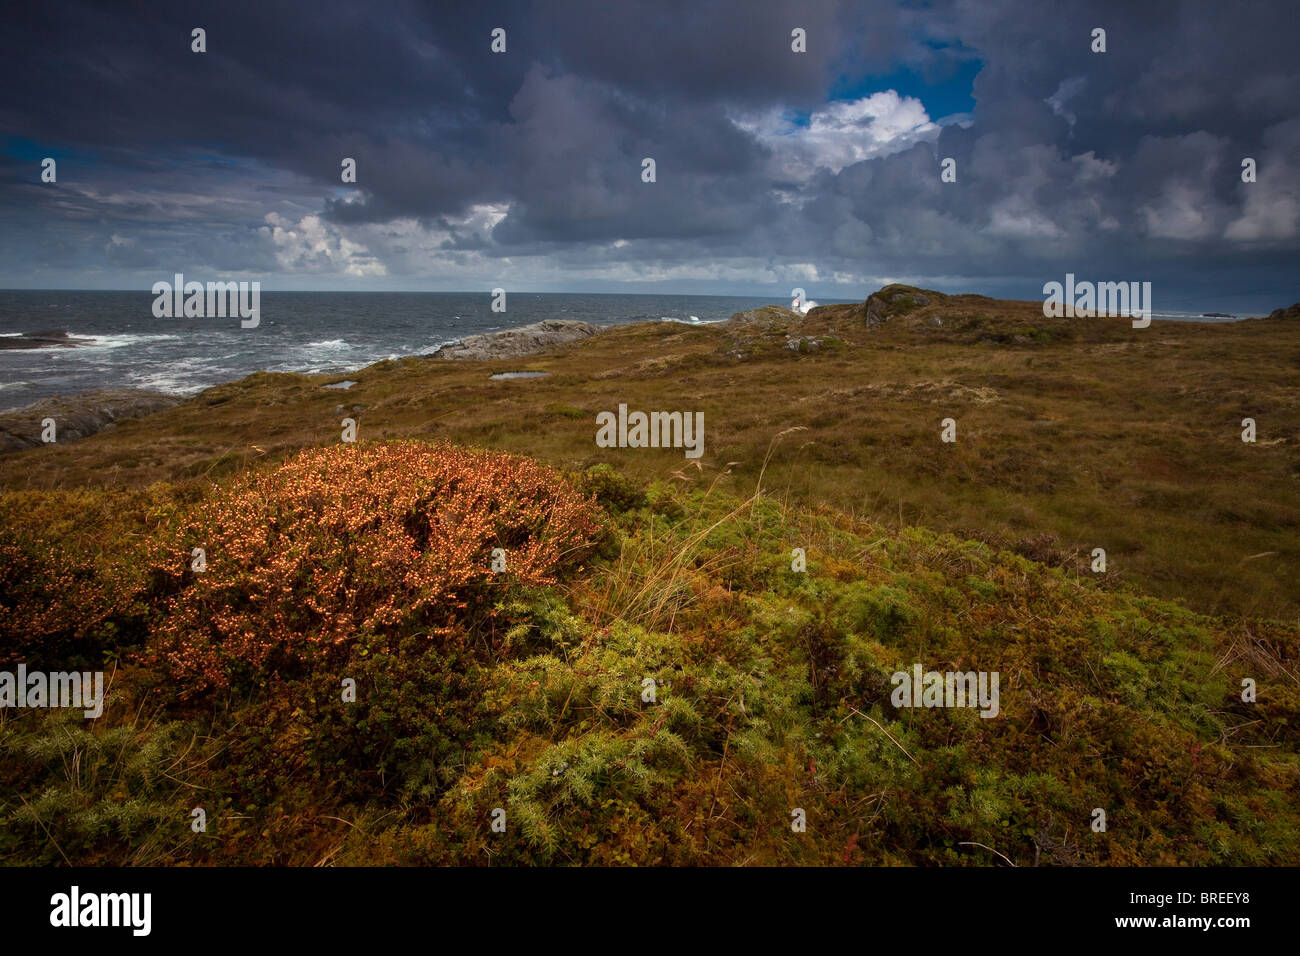 Heather and shrubs on the island Runde on the west coast of Norway. - Stock Image